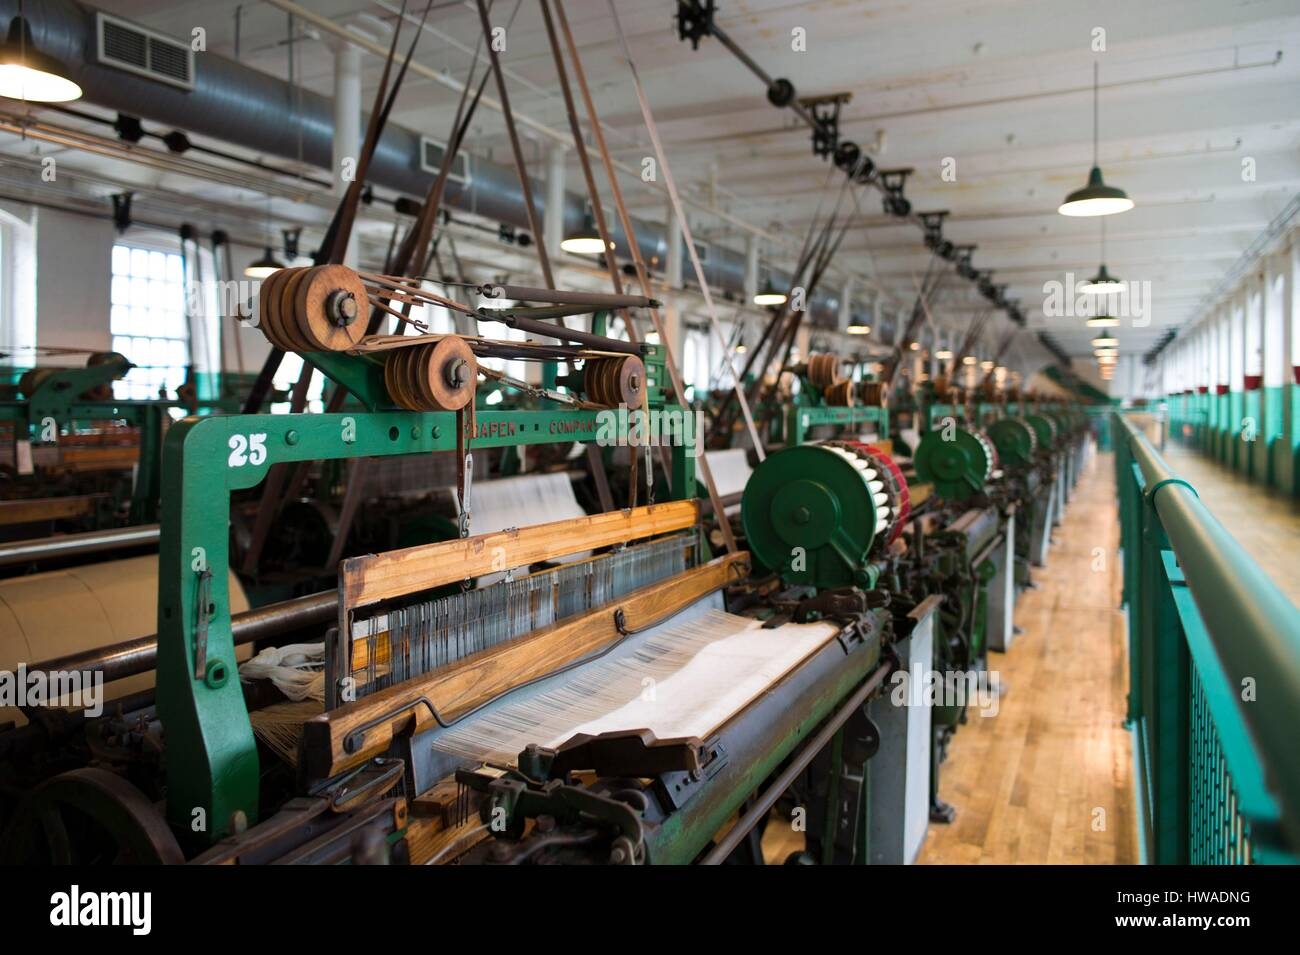 United States, Massachusetts, Lowell, Lowell National Historic Park, Boott Cotton Mills Museum, the weave room, - Stock Image